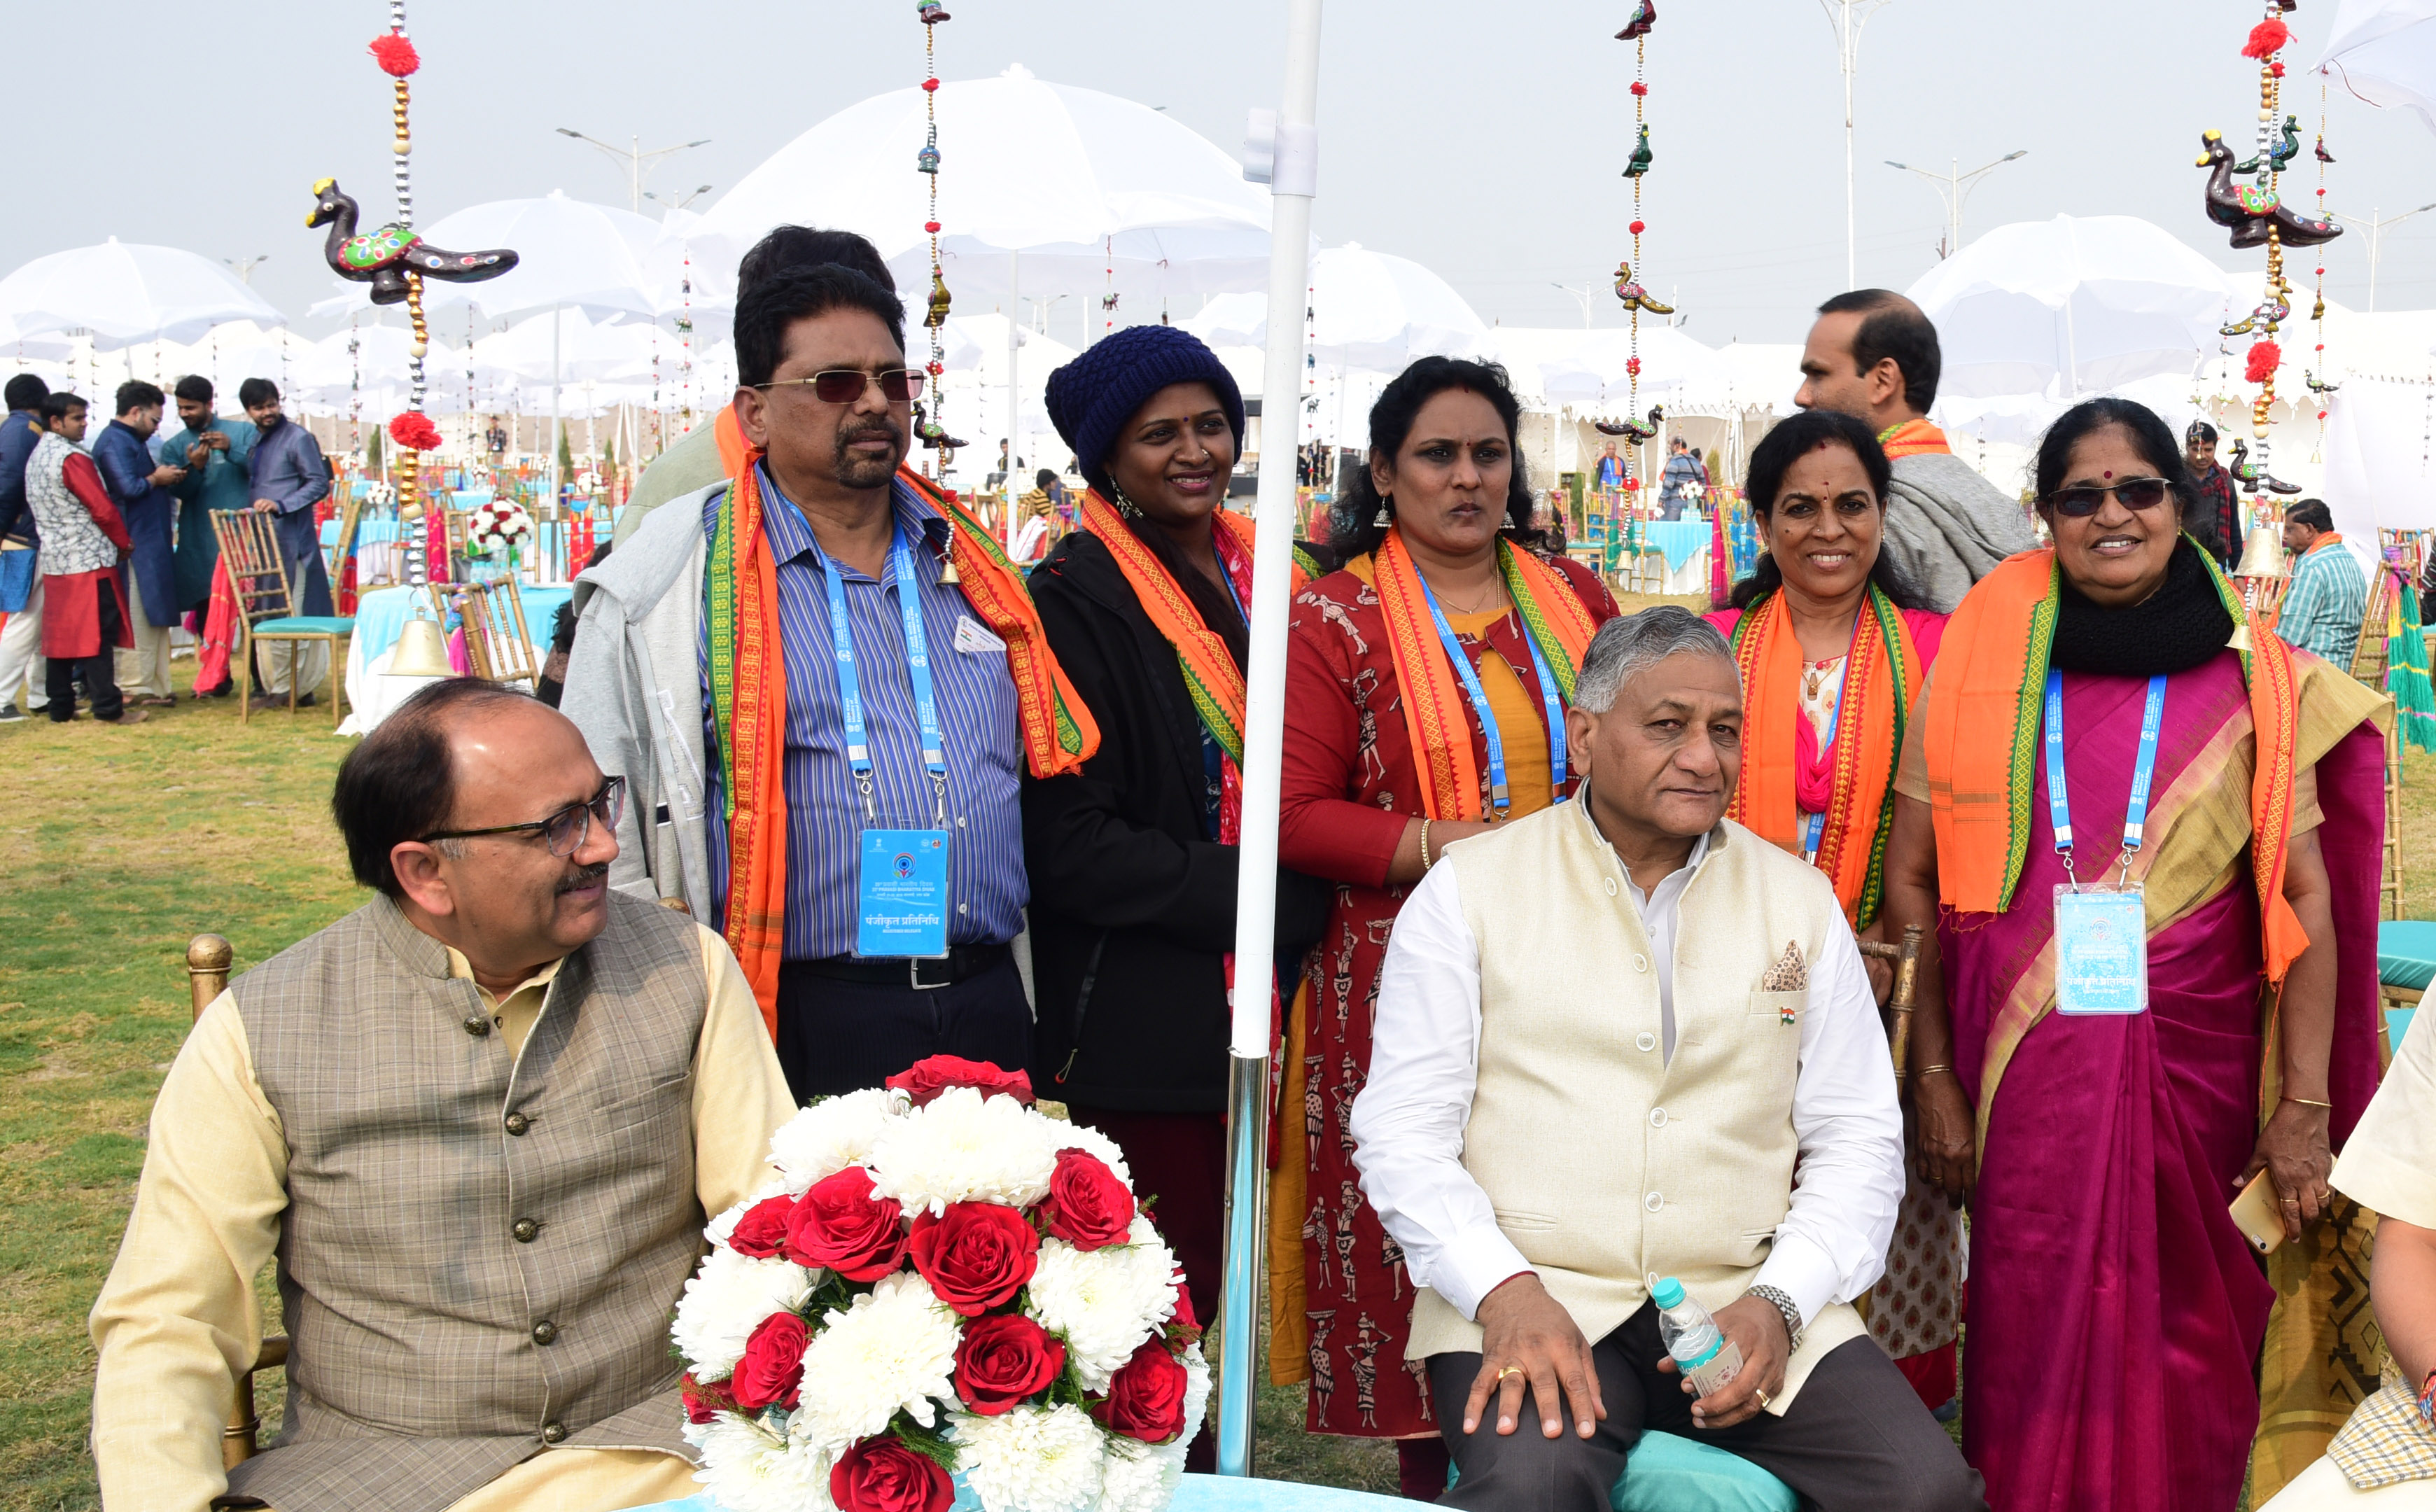 VK Singh, Indian Minister of State for External Affairs and Siddharta Nath Singh, Health Minister of Uttar Pradesh along with the PBD delegates. Photo: Connected to India